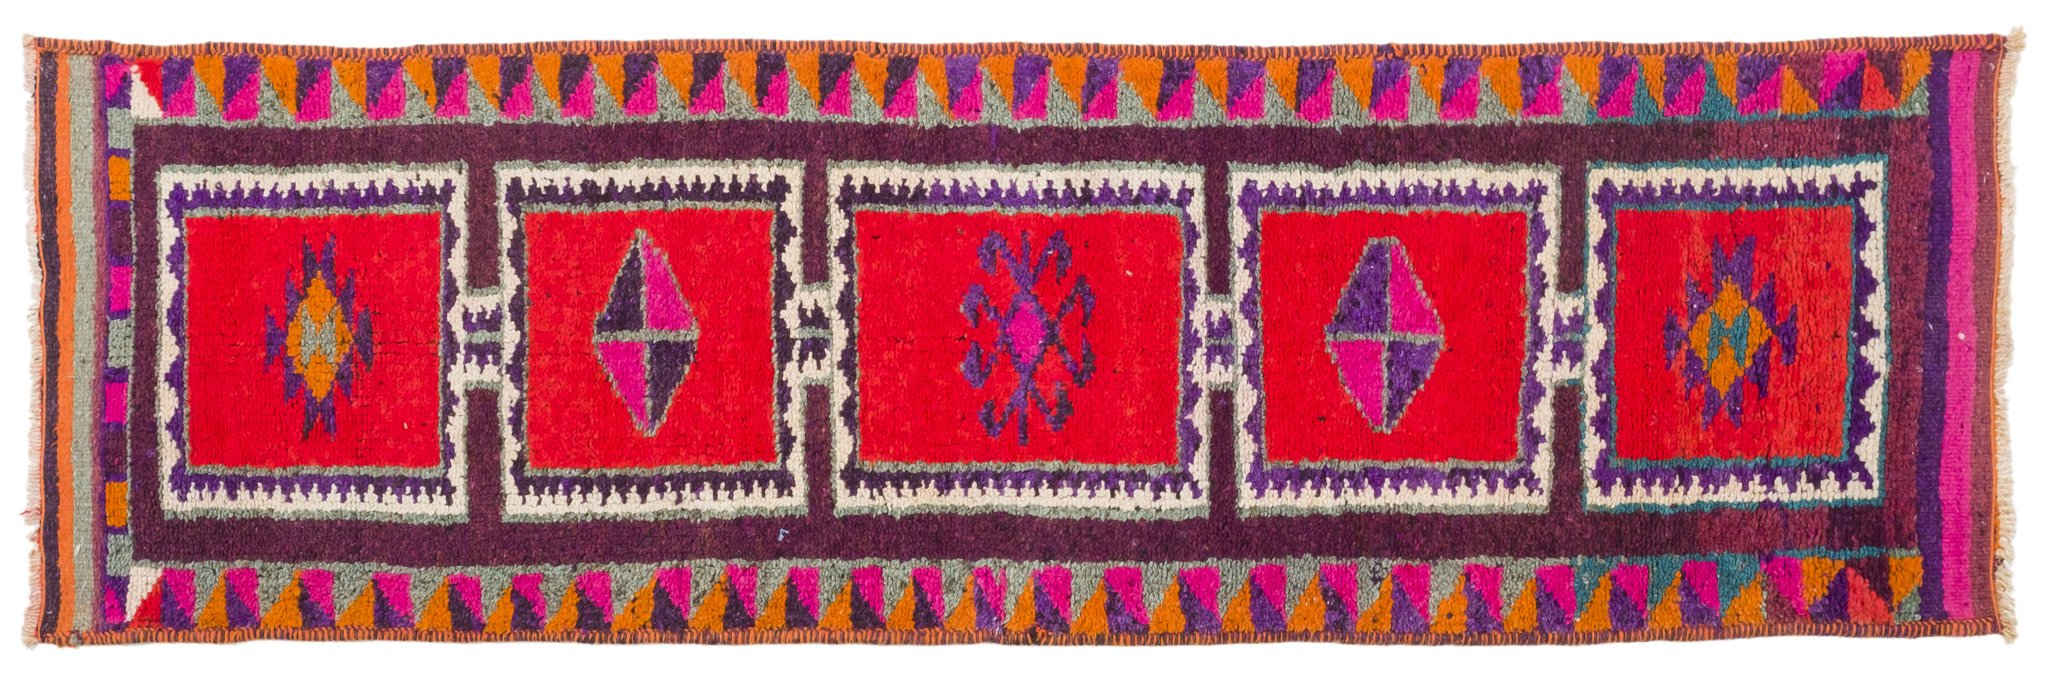 Vintage Turkish Runner Rug Rukija